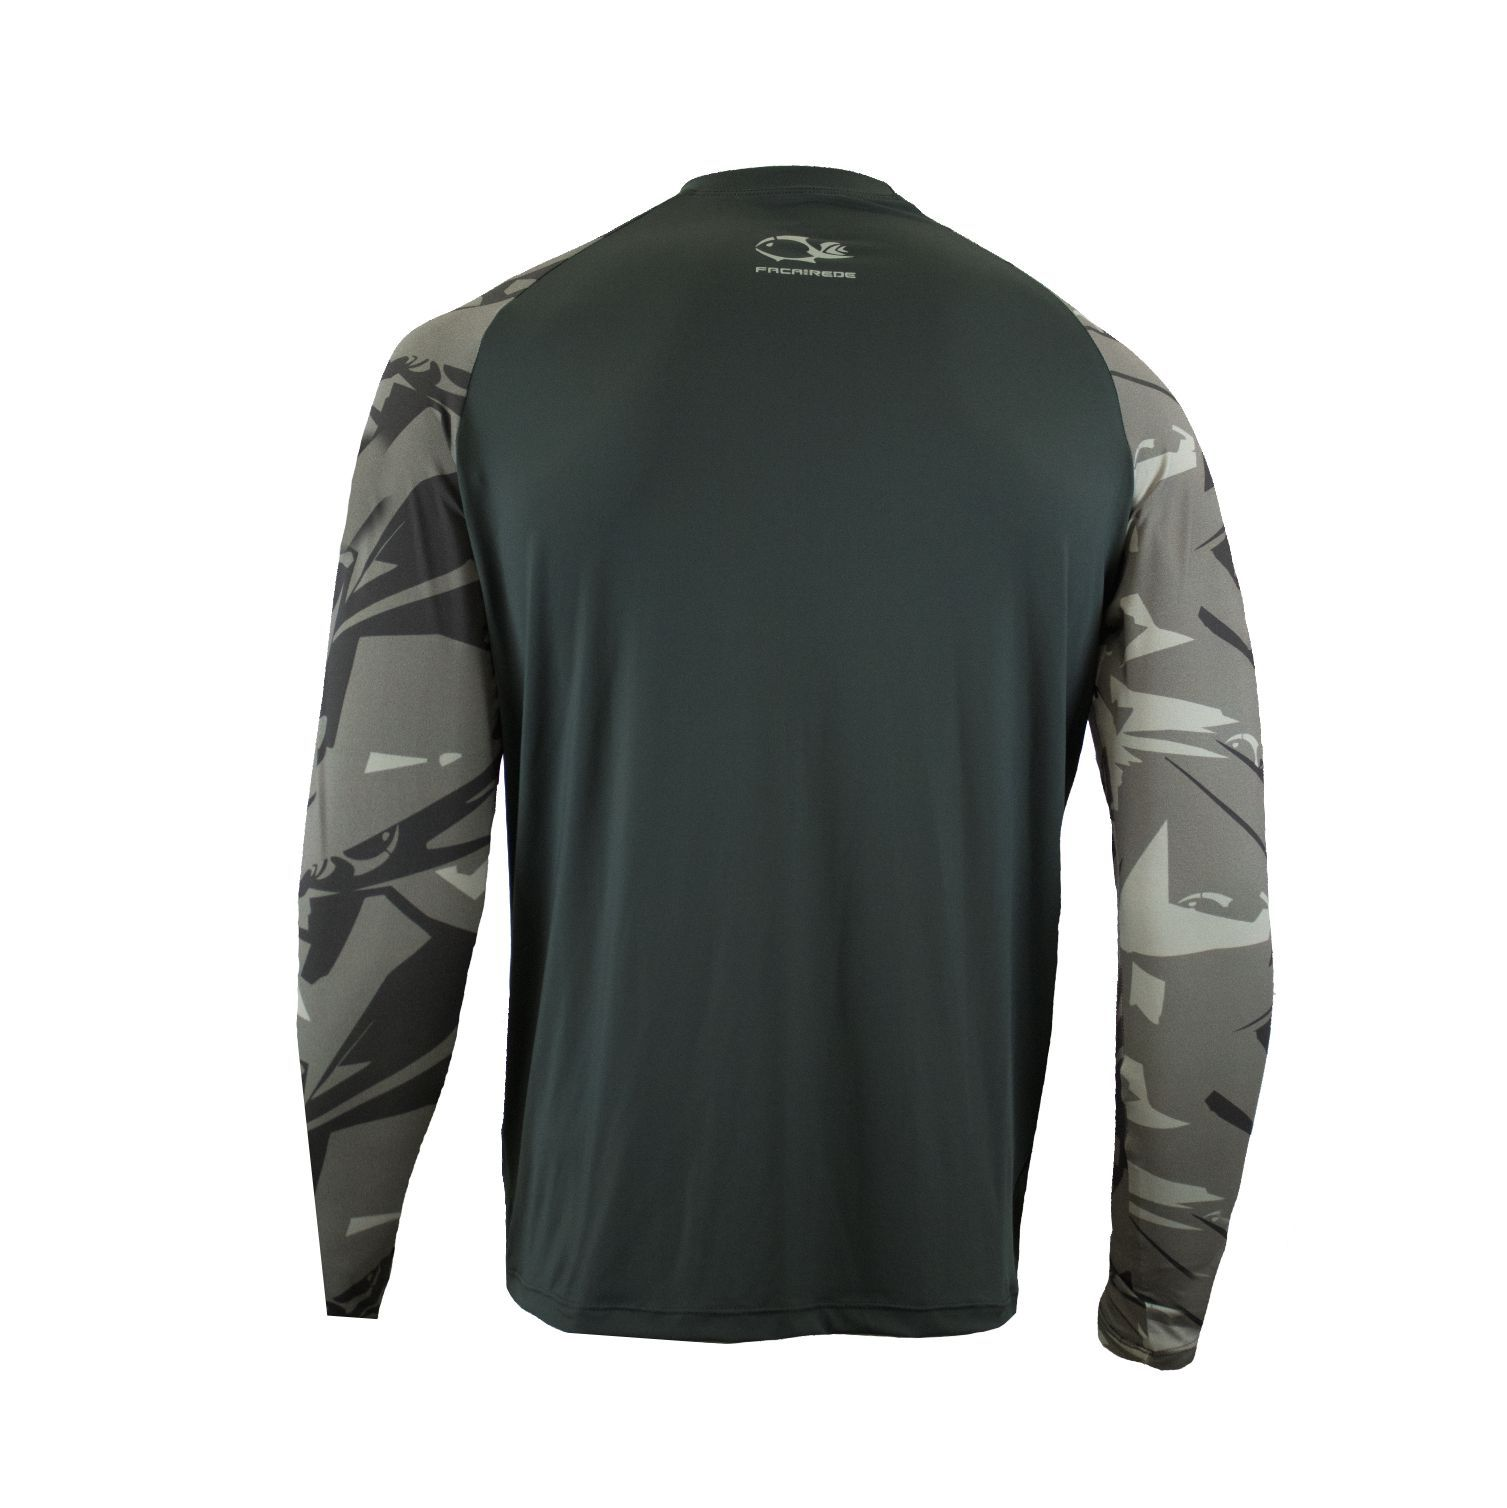 Camisa Faca na Rede ICE Line - Force